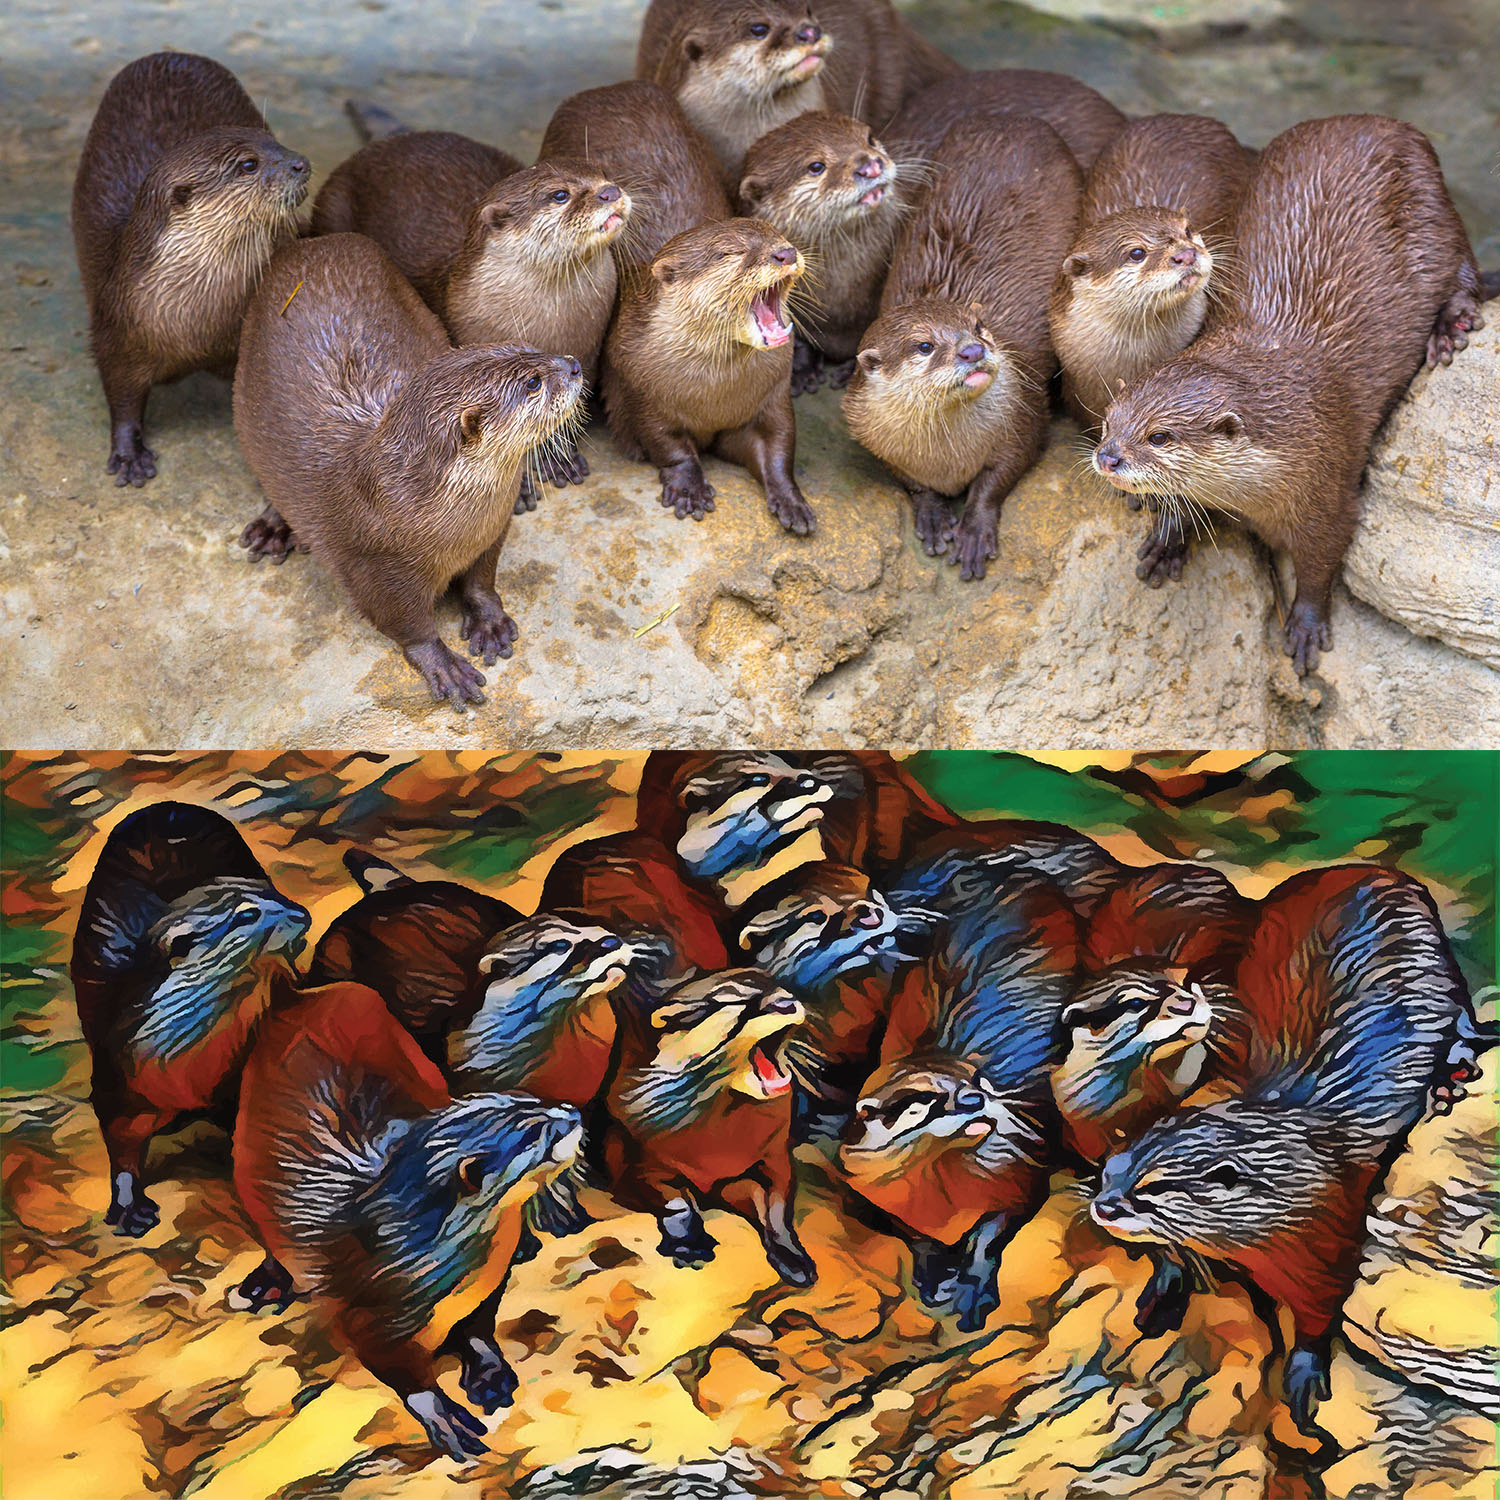 Before and after stylized image of a group of chattering otters